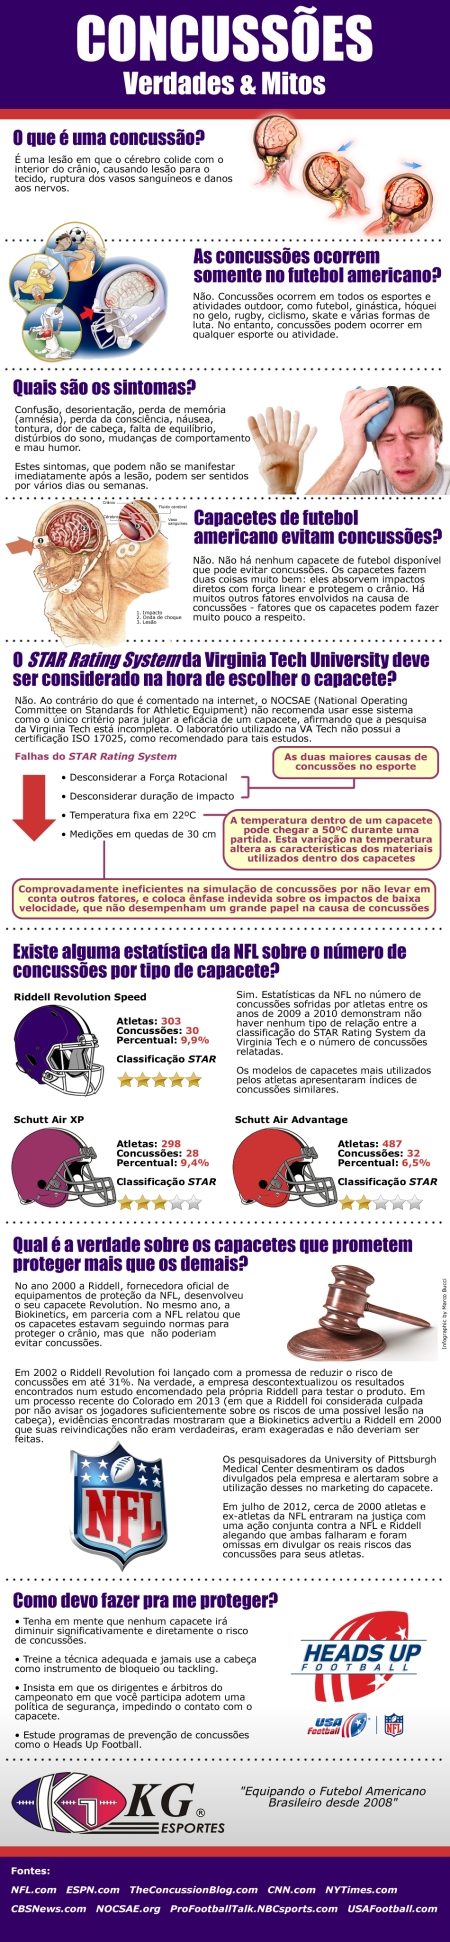 infographic_concussions_2.0